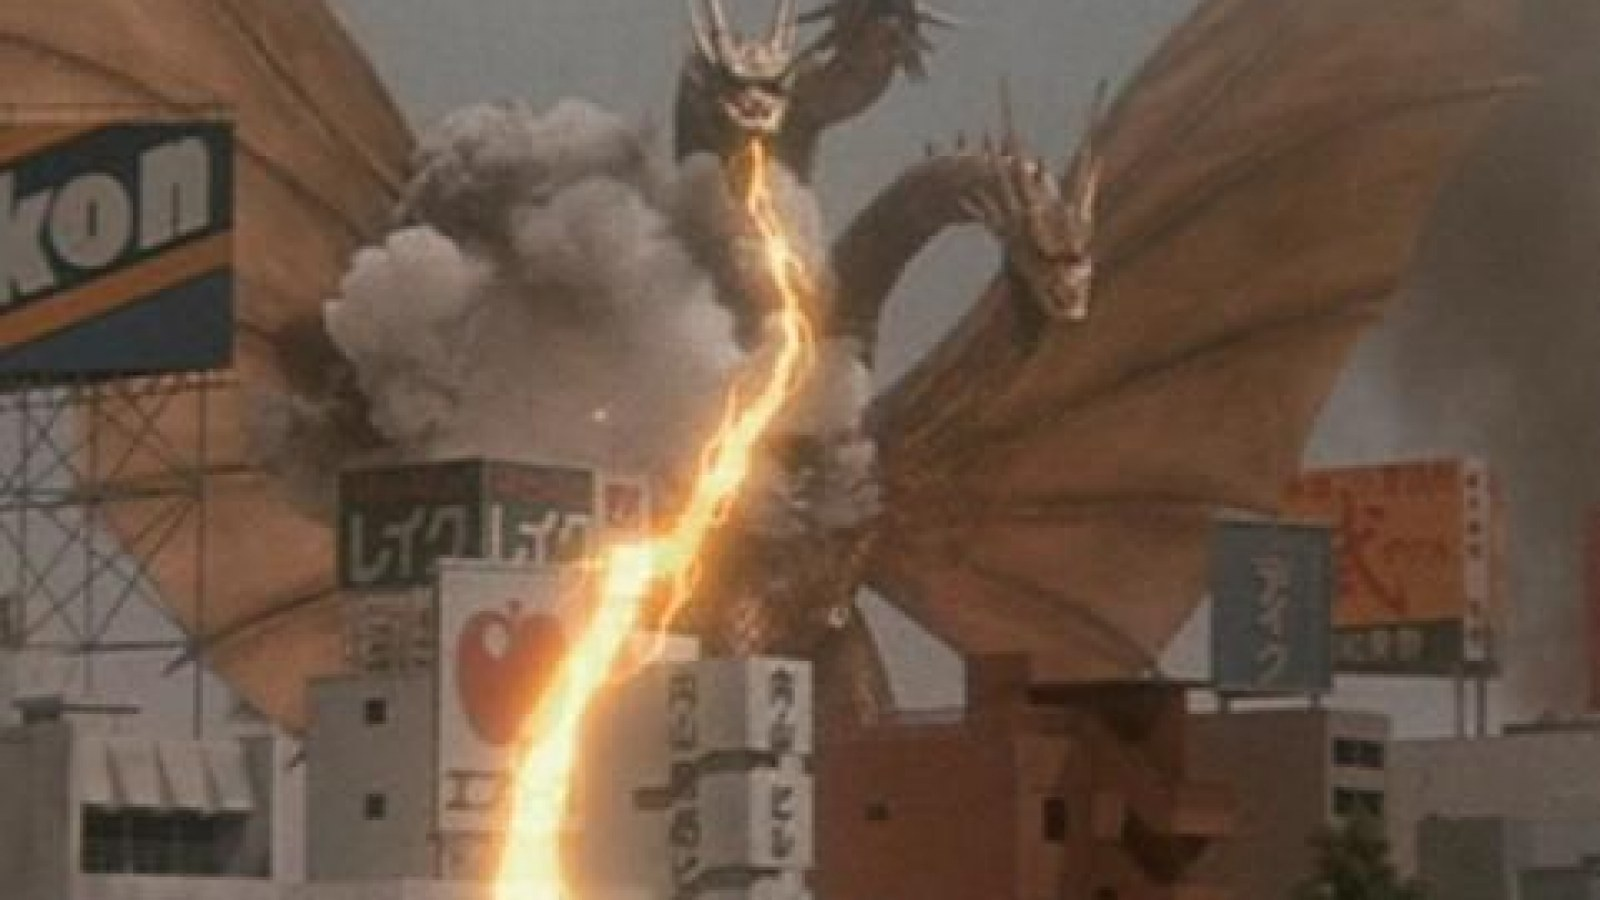 Godzilla: King of the Monsters' Has Classic Ghidorah Attack, But New